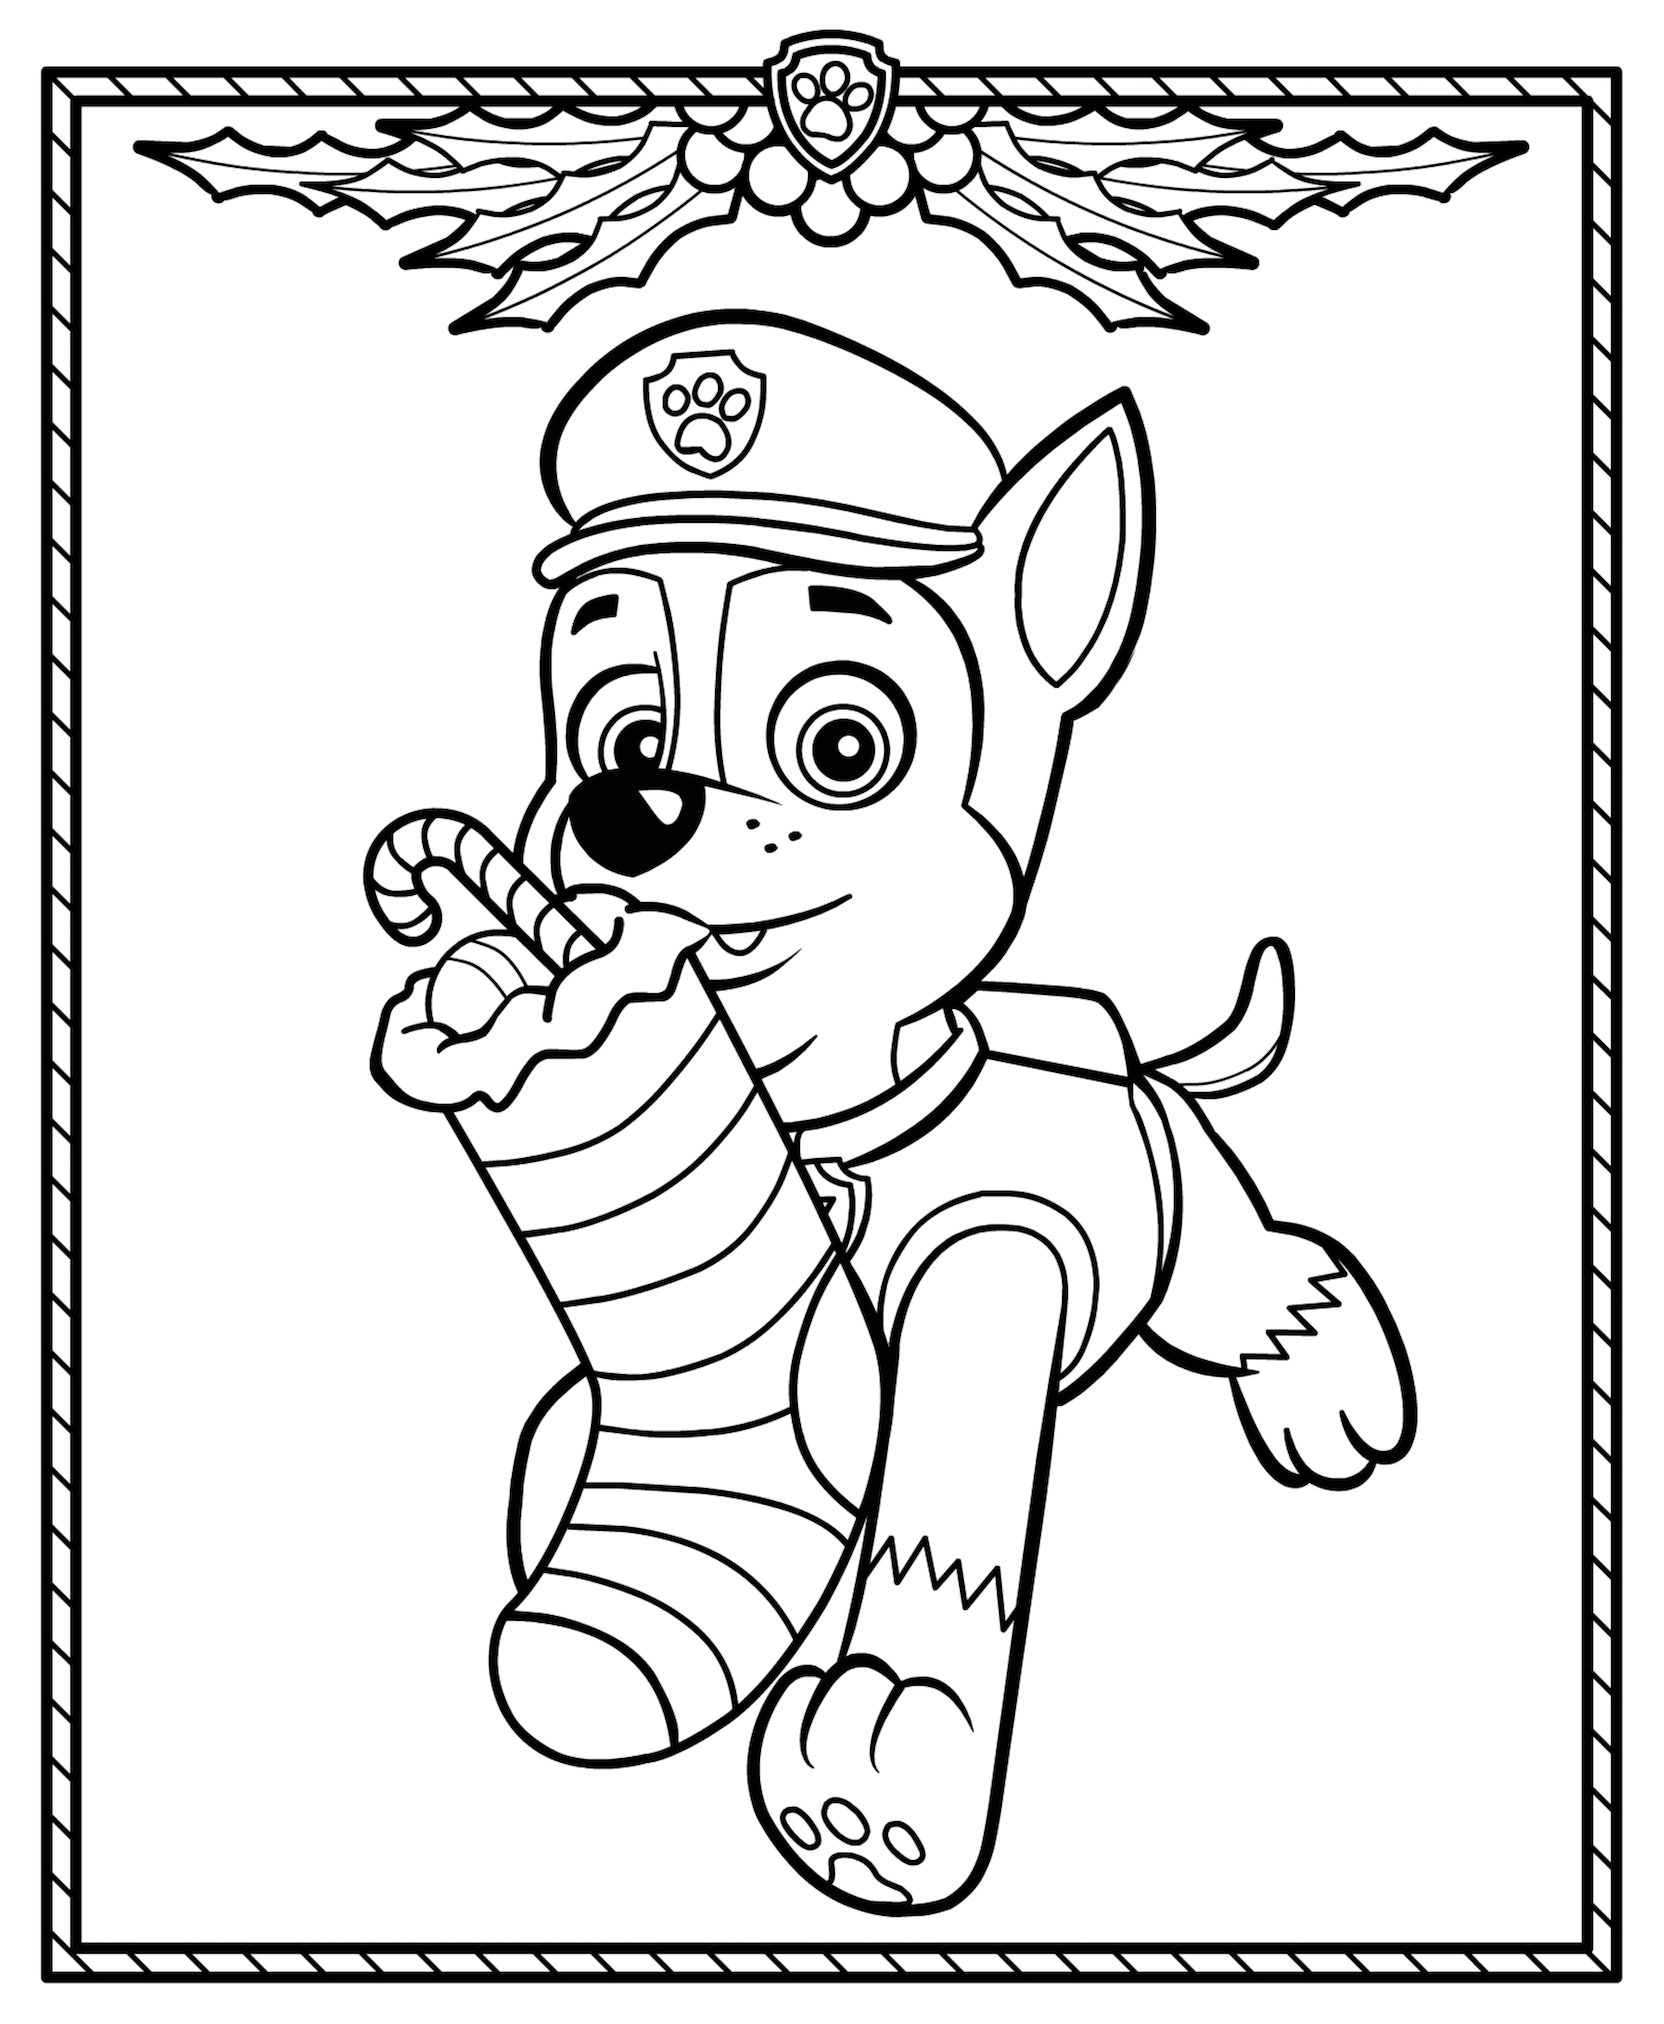 Christmas Coloring Pages Paw Patrol Coloring Paw Patrol Christmas Paw Patrol Coloring Pages